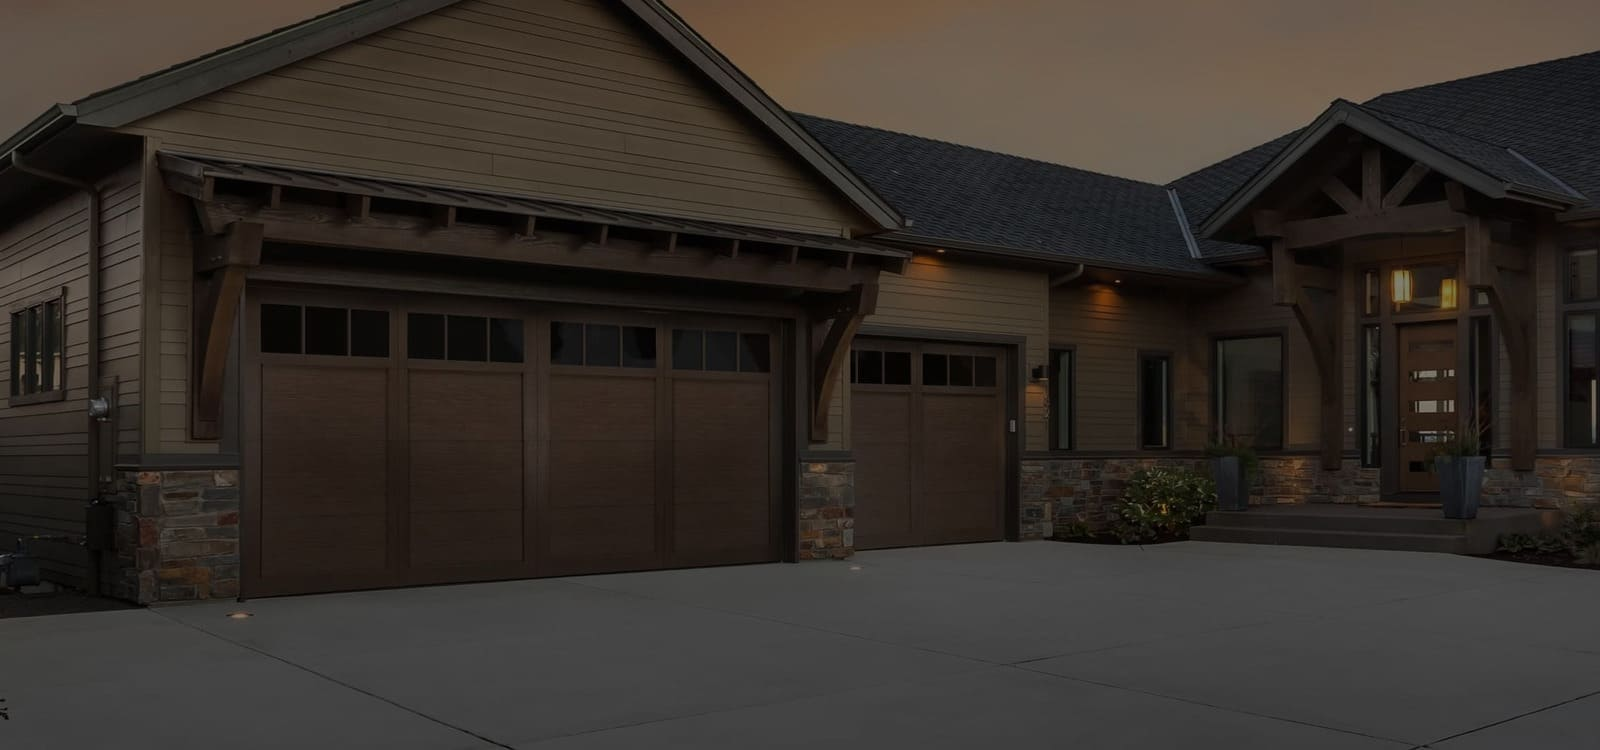 Garage Door Repair Layton Utah | Same Day Repair Service ...